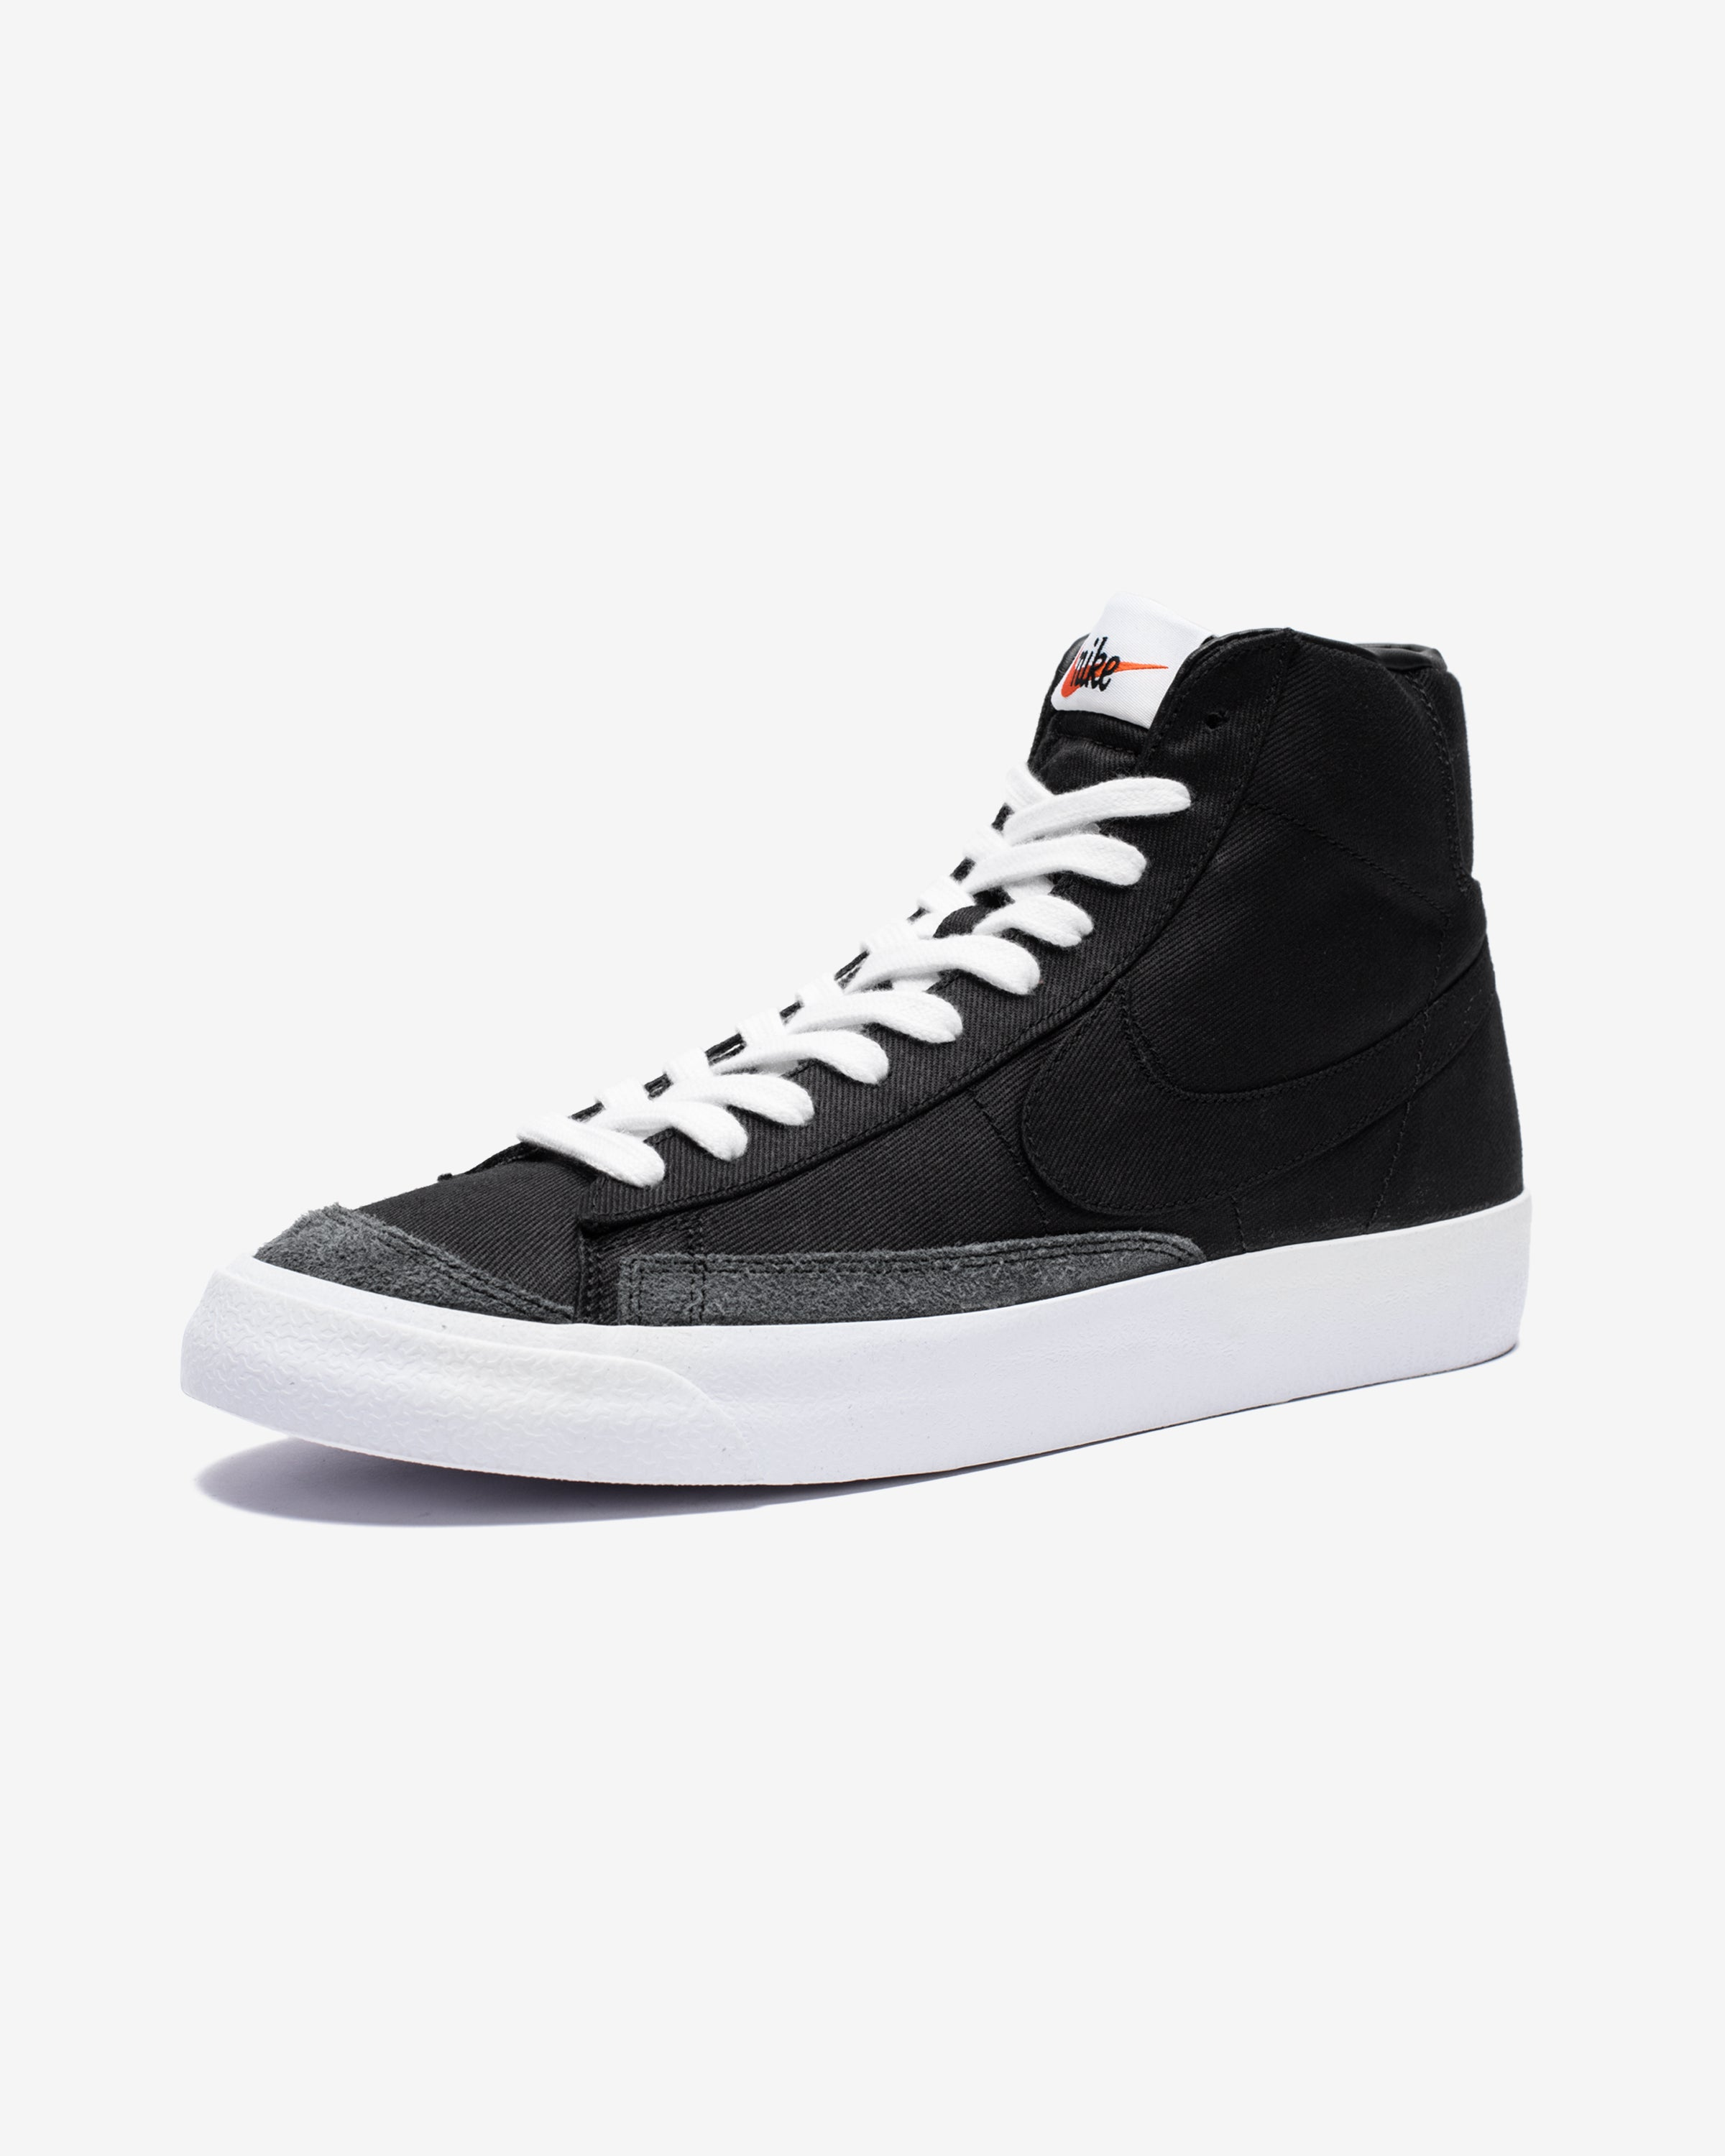 BLAZER MID '77 VINTAGE WE - BLACK/WHITE